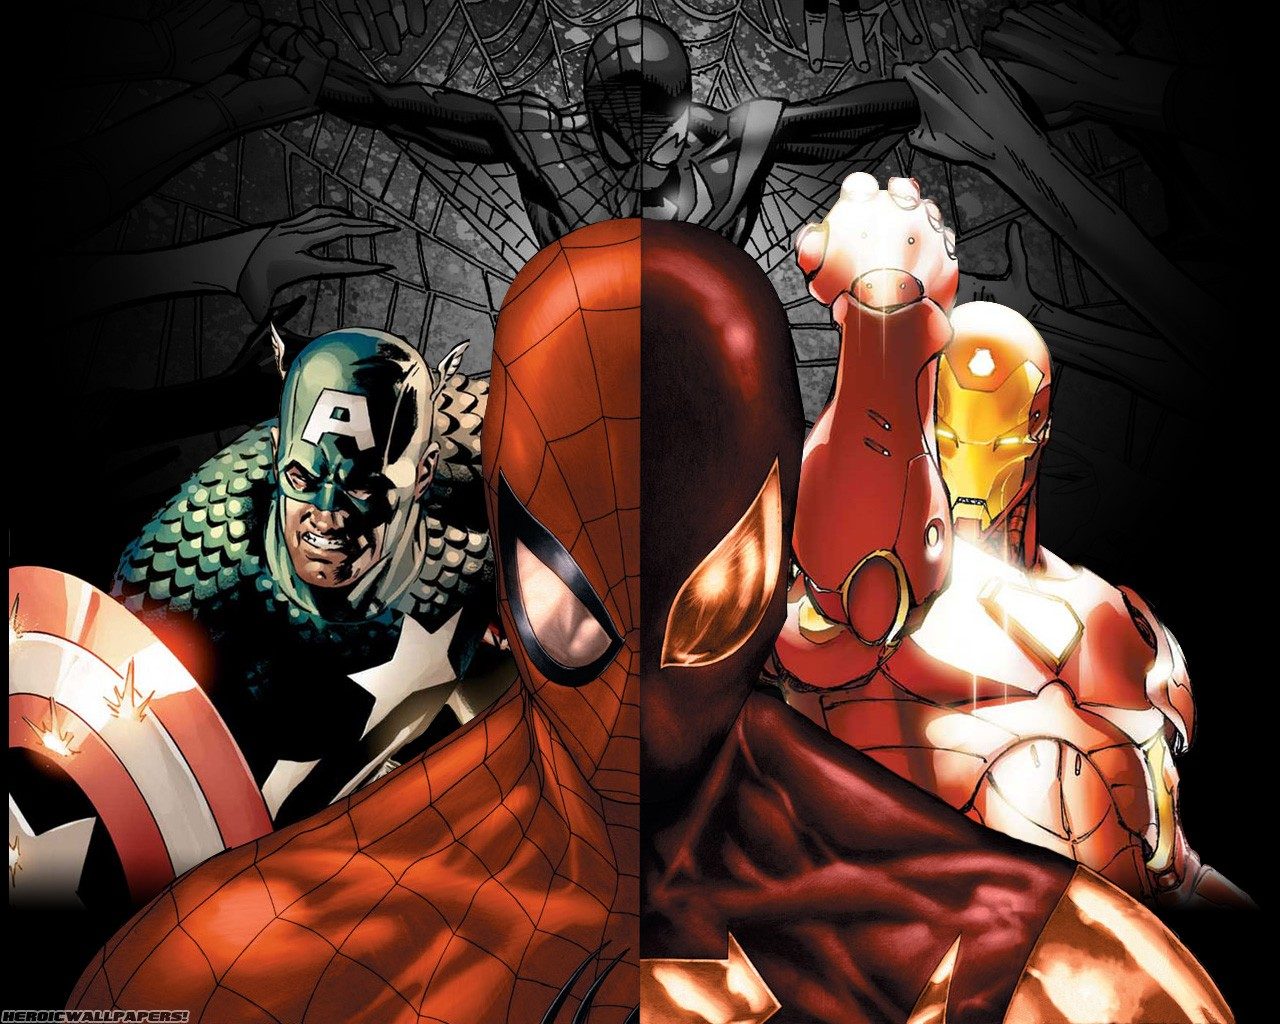 General 1280x1024 Marvel Comics movies Captain America Iron Man Spider-Man The Avengers Civil War (comics) comic books